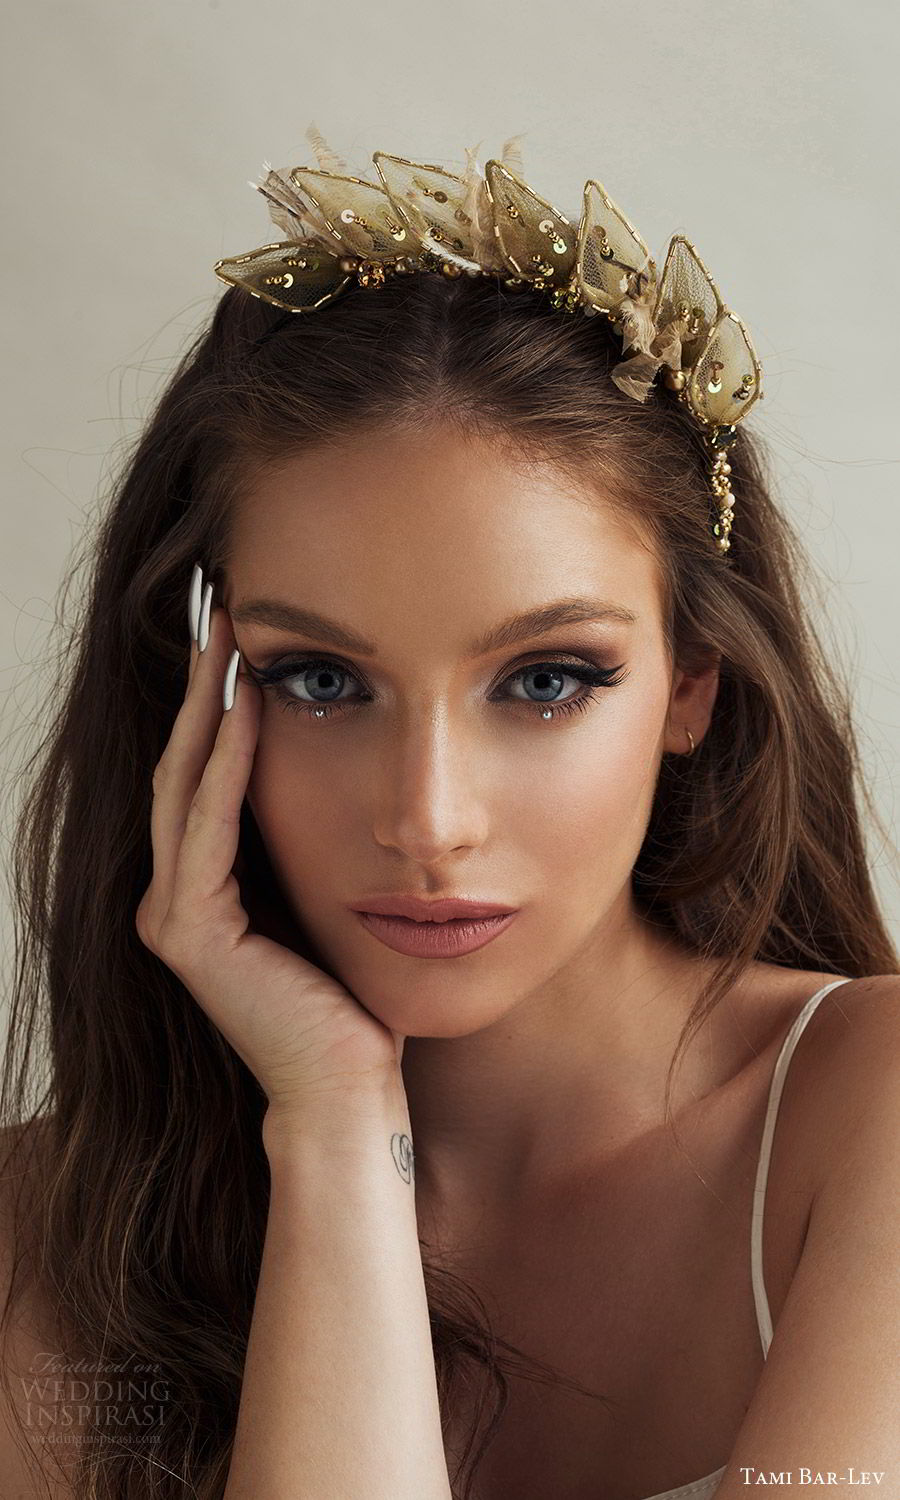 tami bar lev headpiece 2019 bridal hair accessories prickly half tiara gold